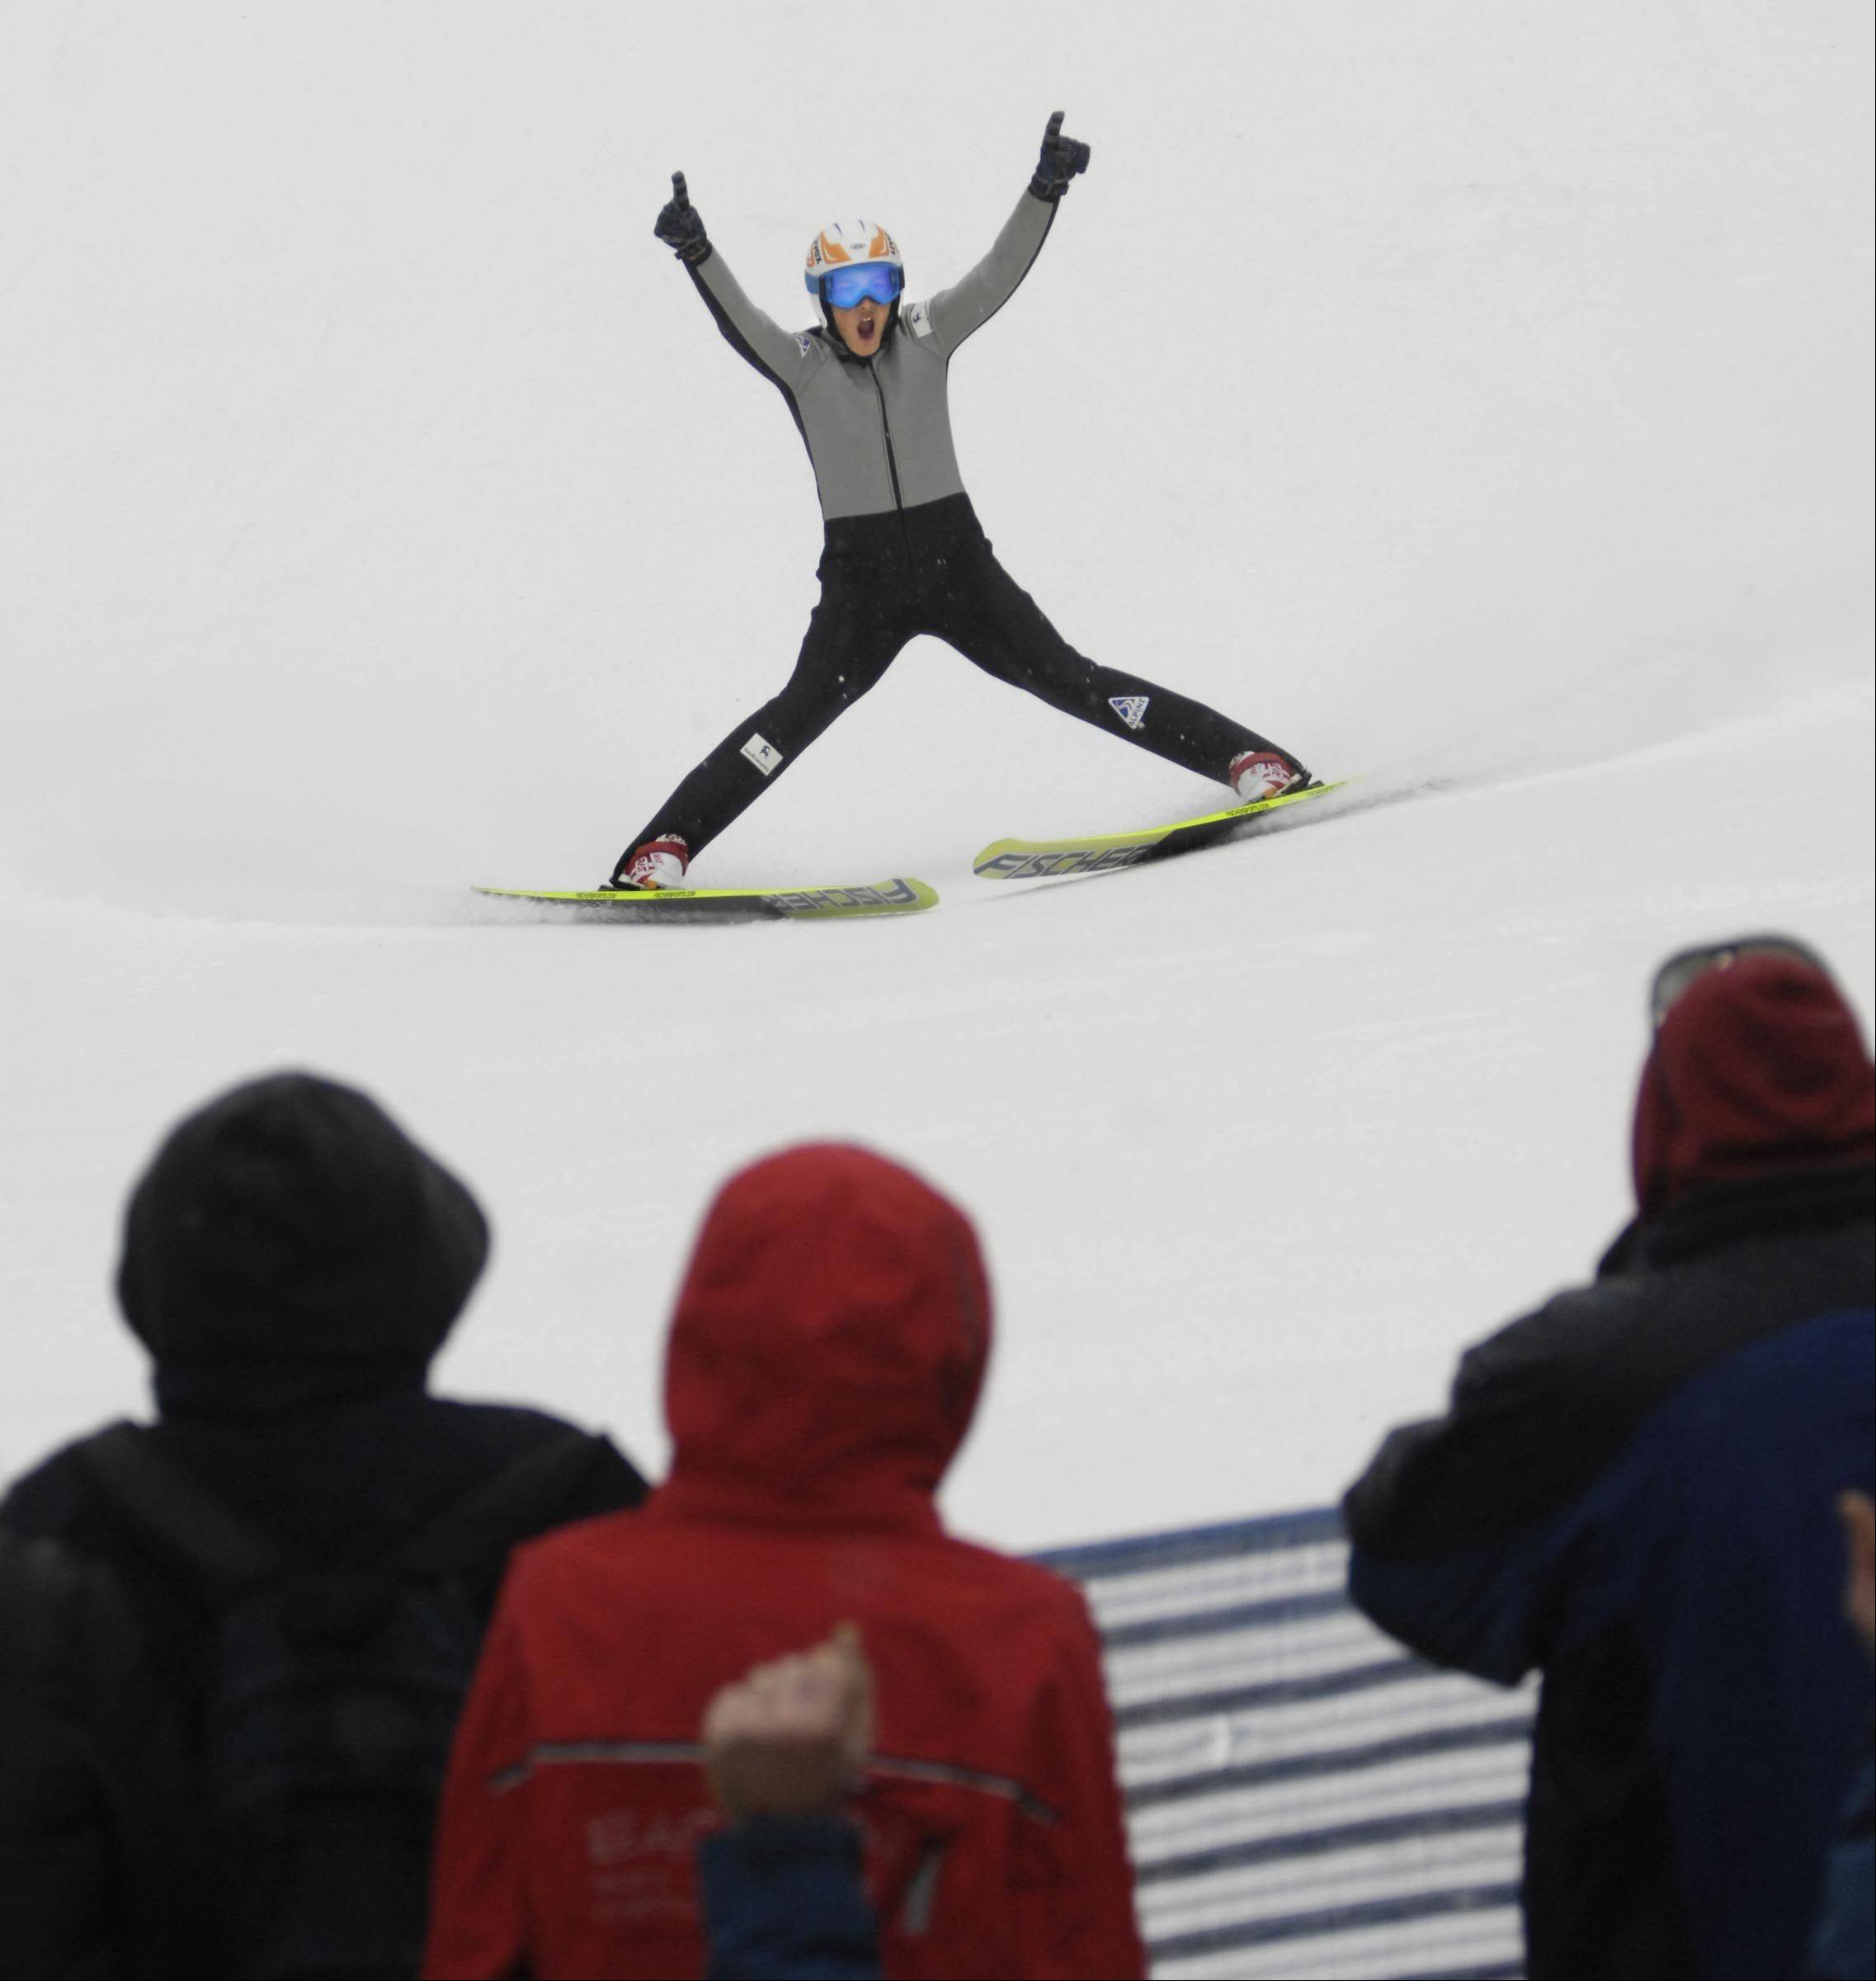 As he comes to a stop at the bottom of the hill, Miles Lussi of Lake Placid, N.Y., exalts in his 78-meter jump Sunday at the 108th Annual International Ski Jumping Tournament at Norge Ski Club in Fox River Grove.